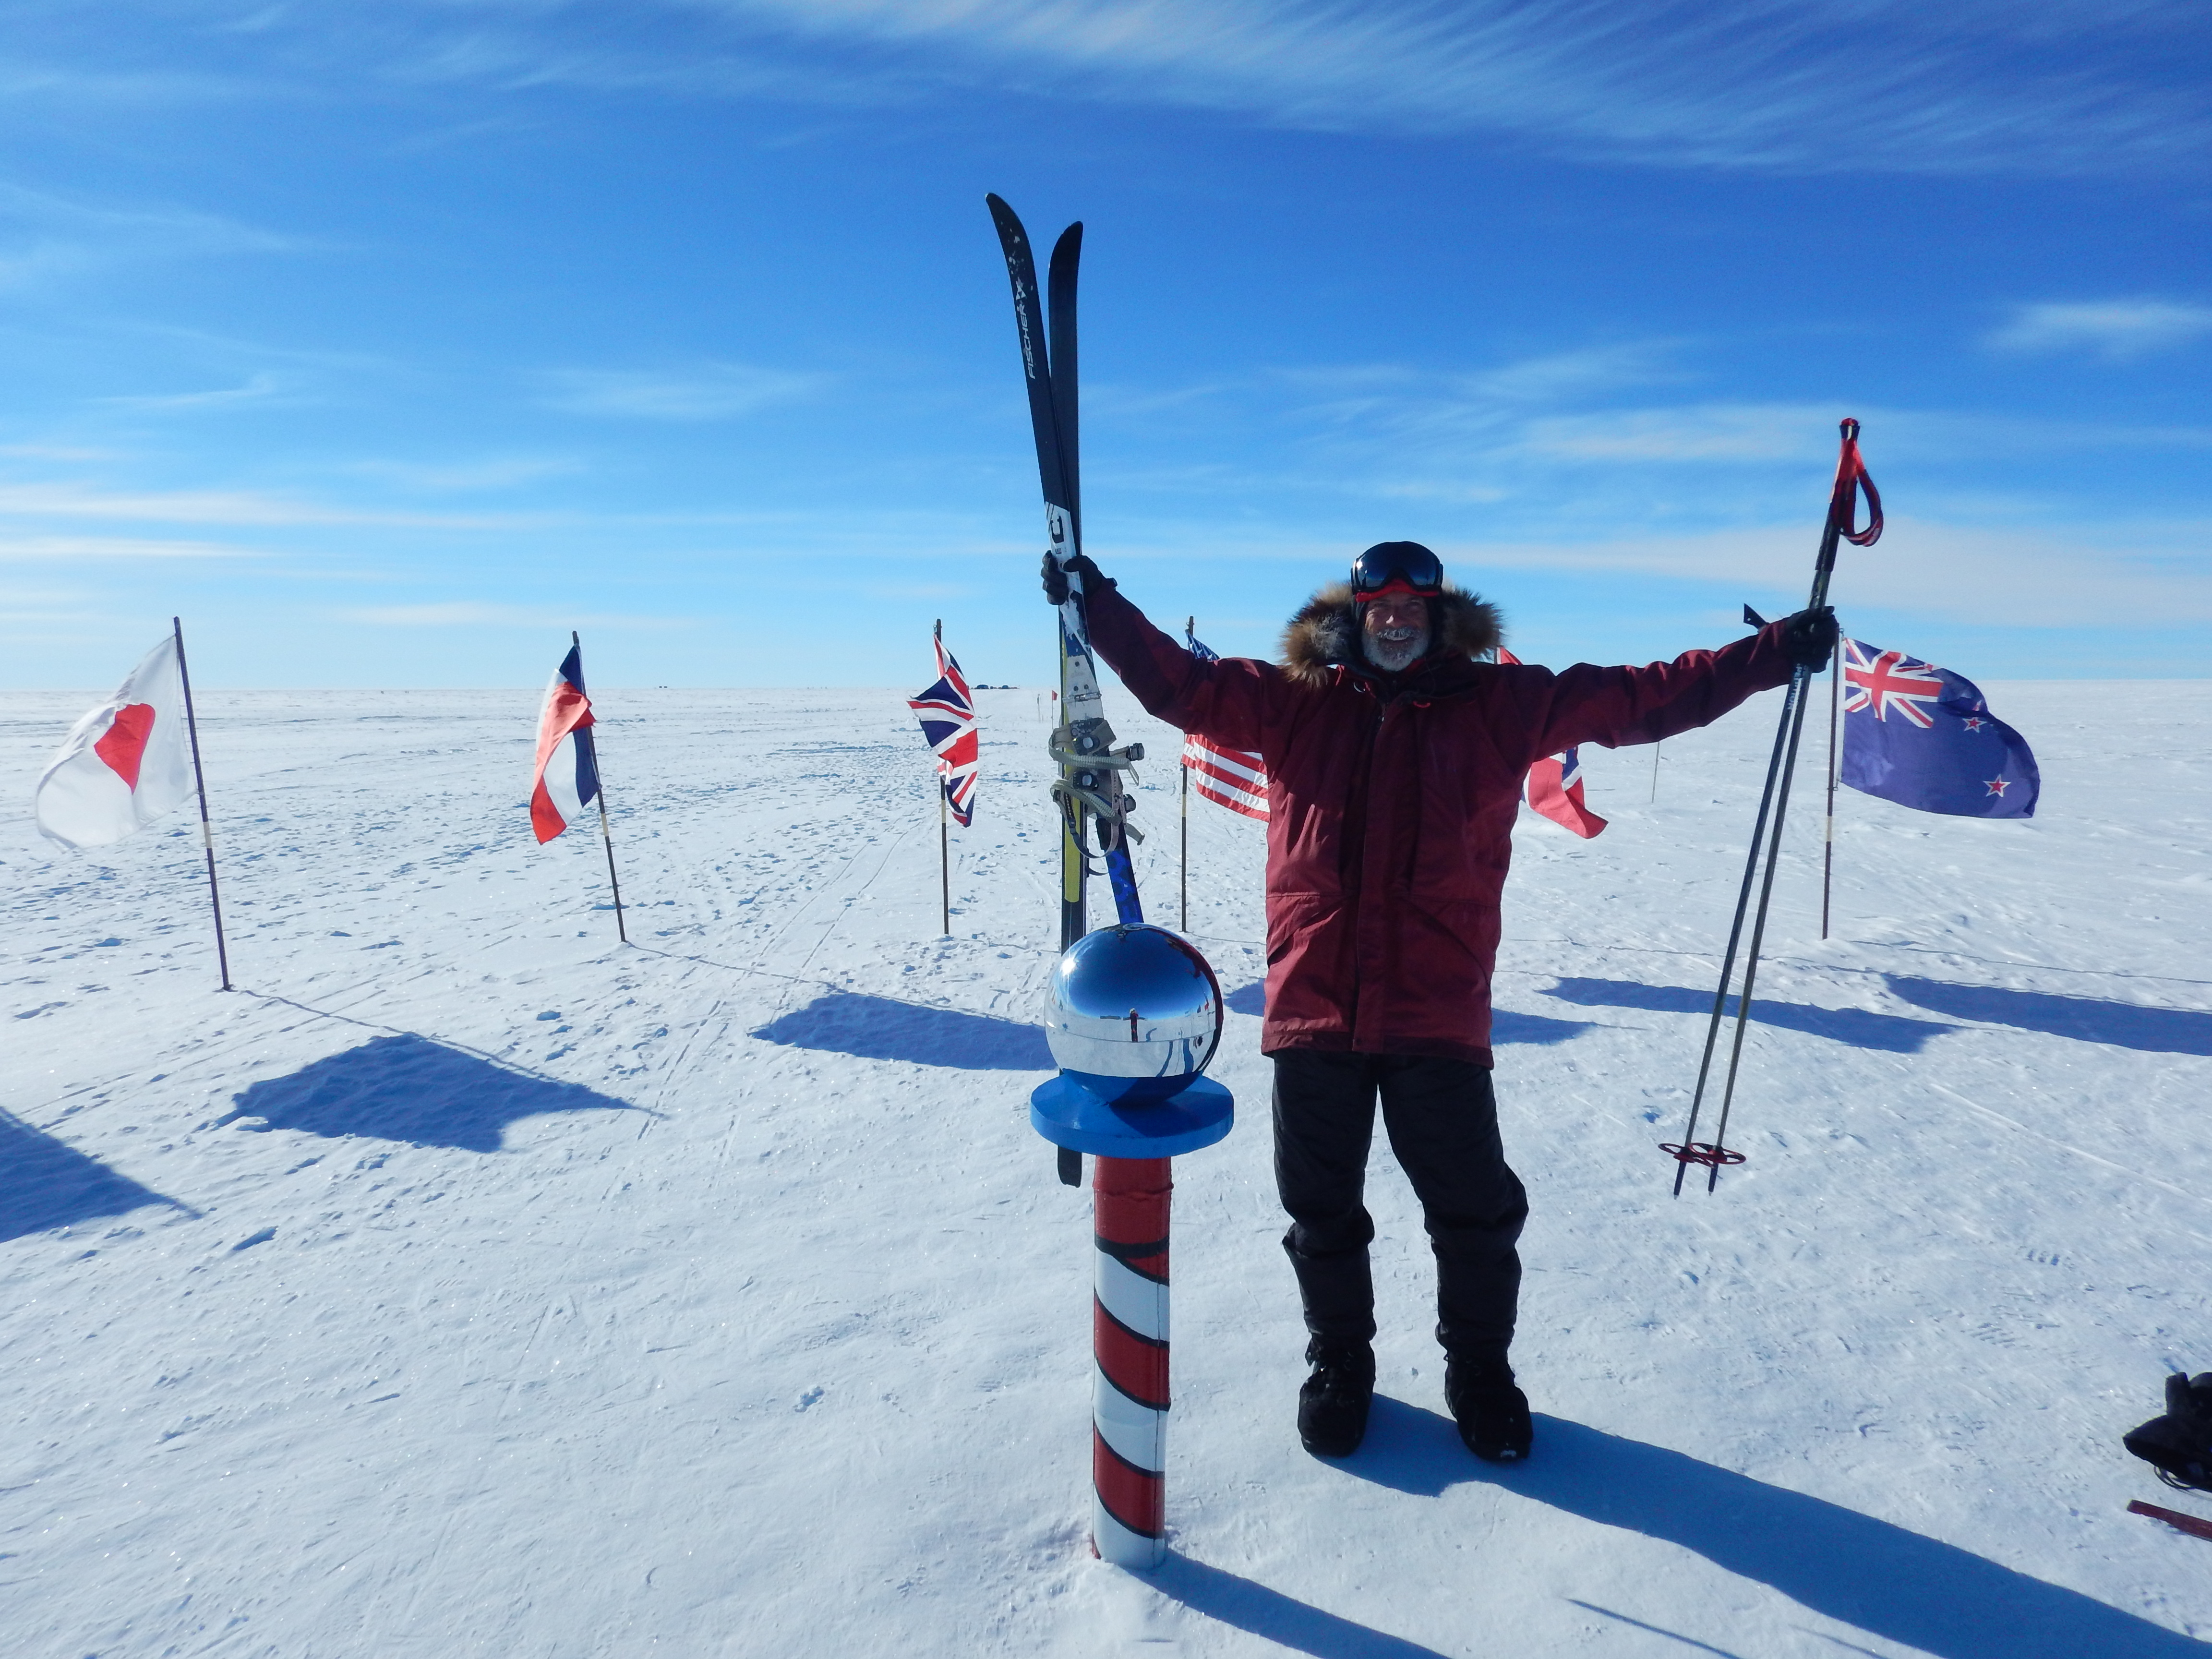 Scott Kress South Pole